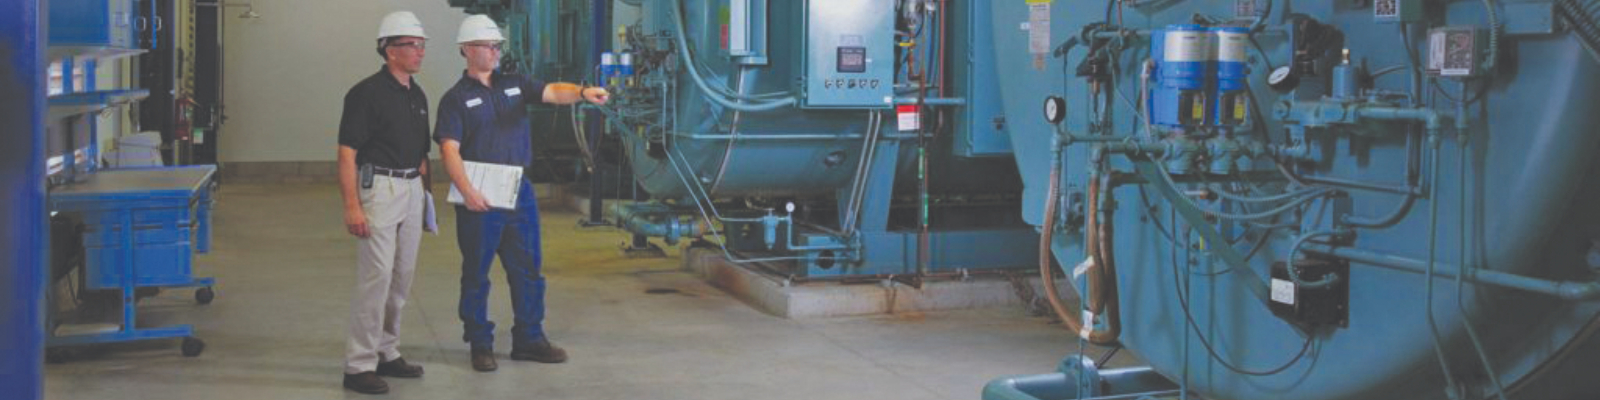 Boiler Equipment Sales and Service